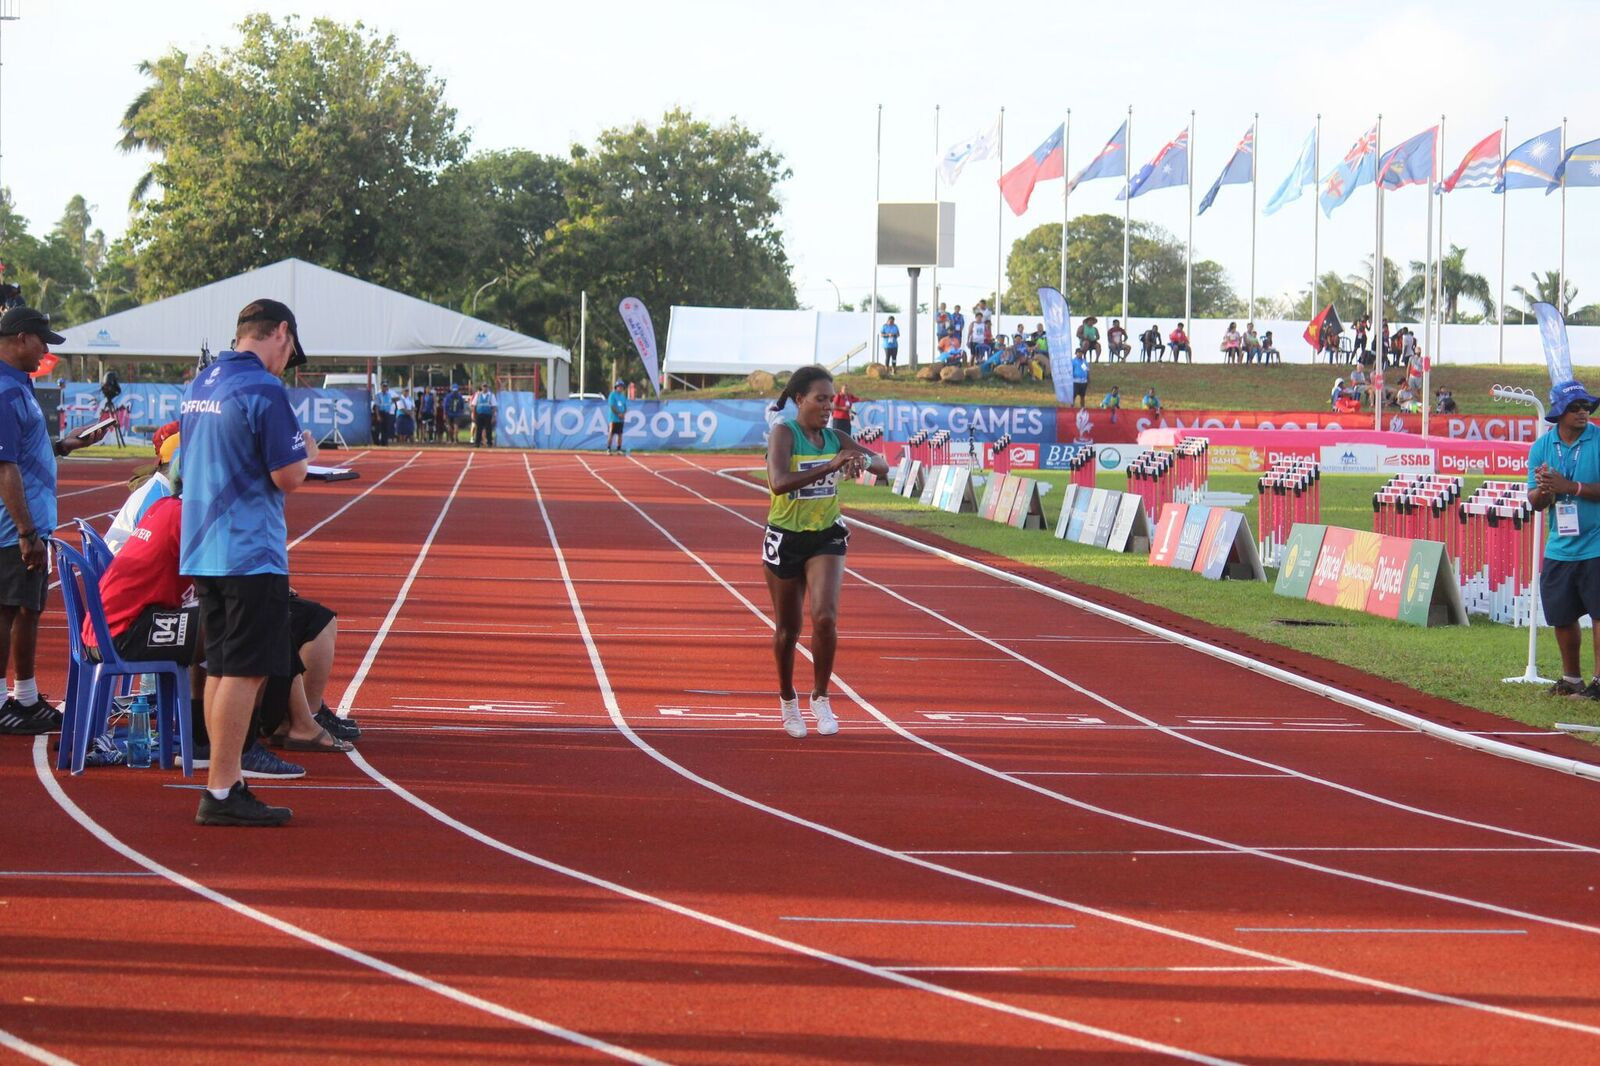 Women's 10,000m champion Sharon Kikini Firisua checks her time as she crosses the line ©Games News Service